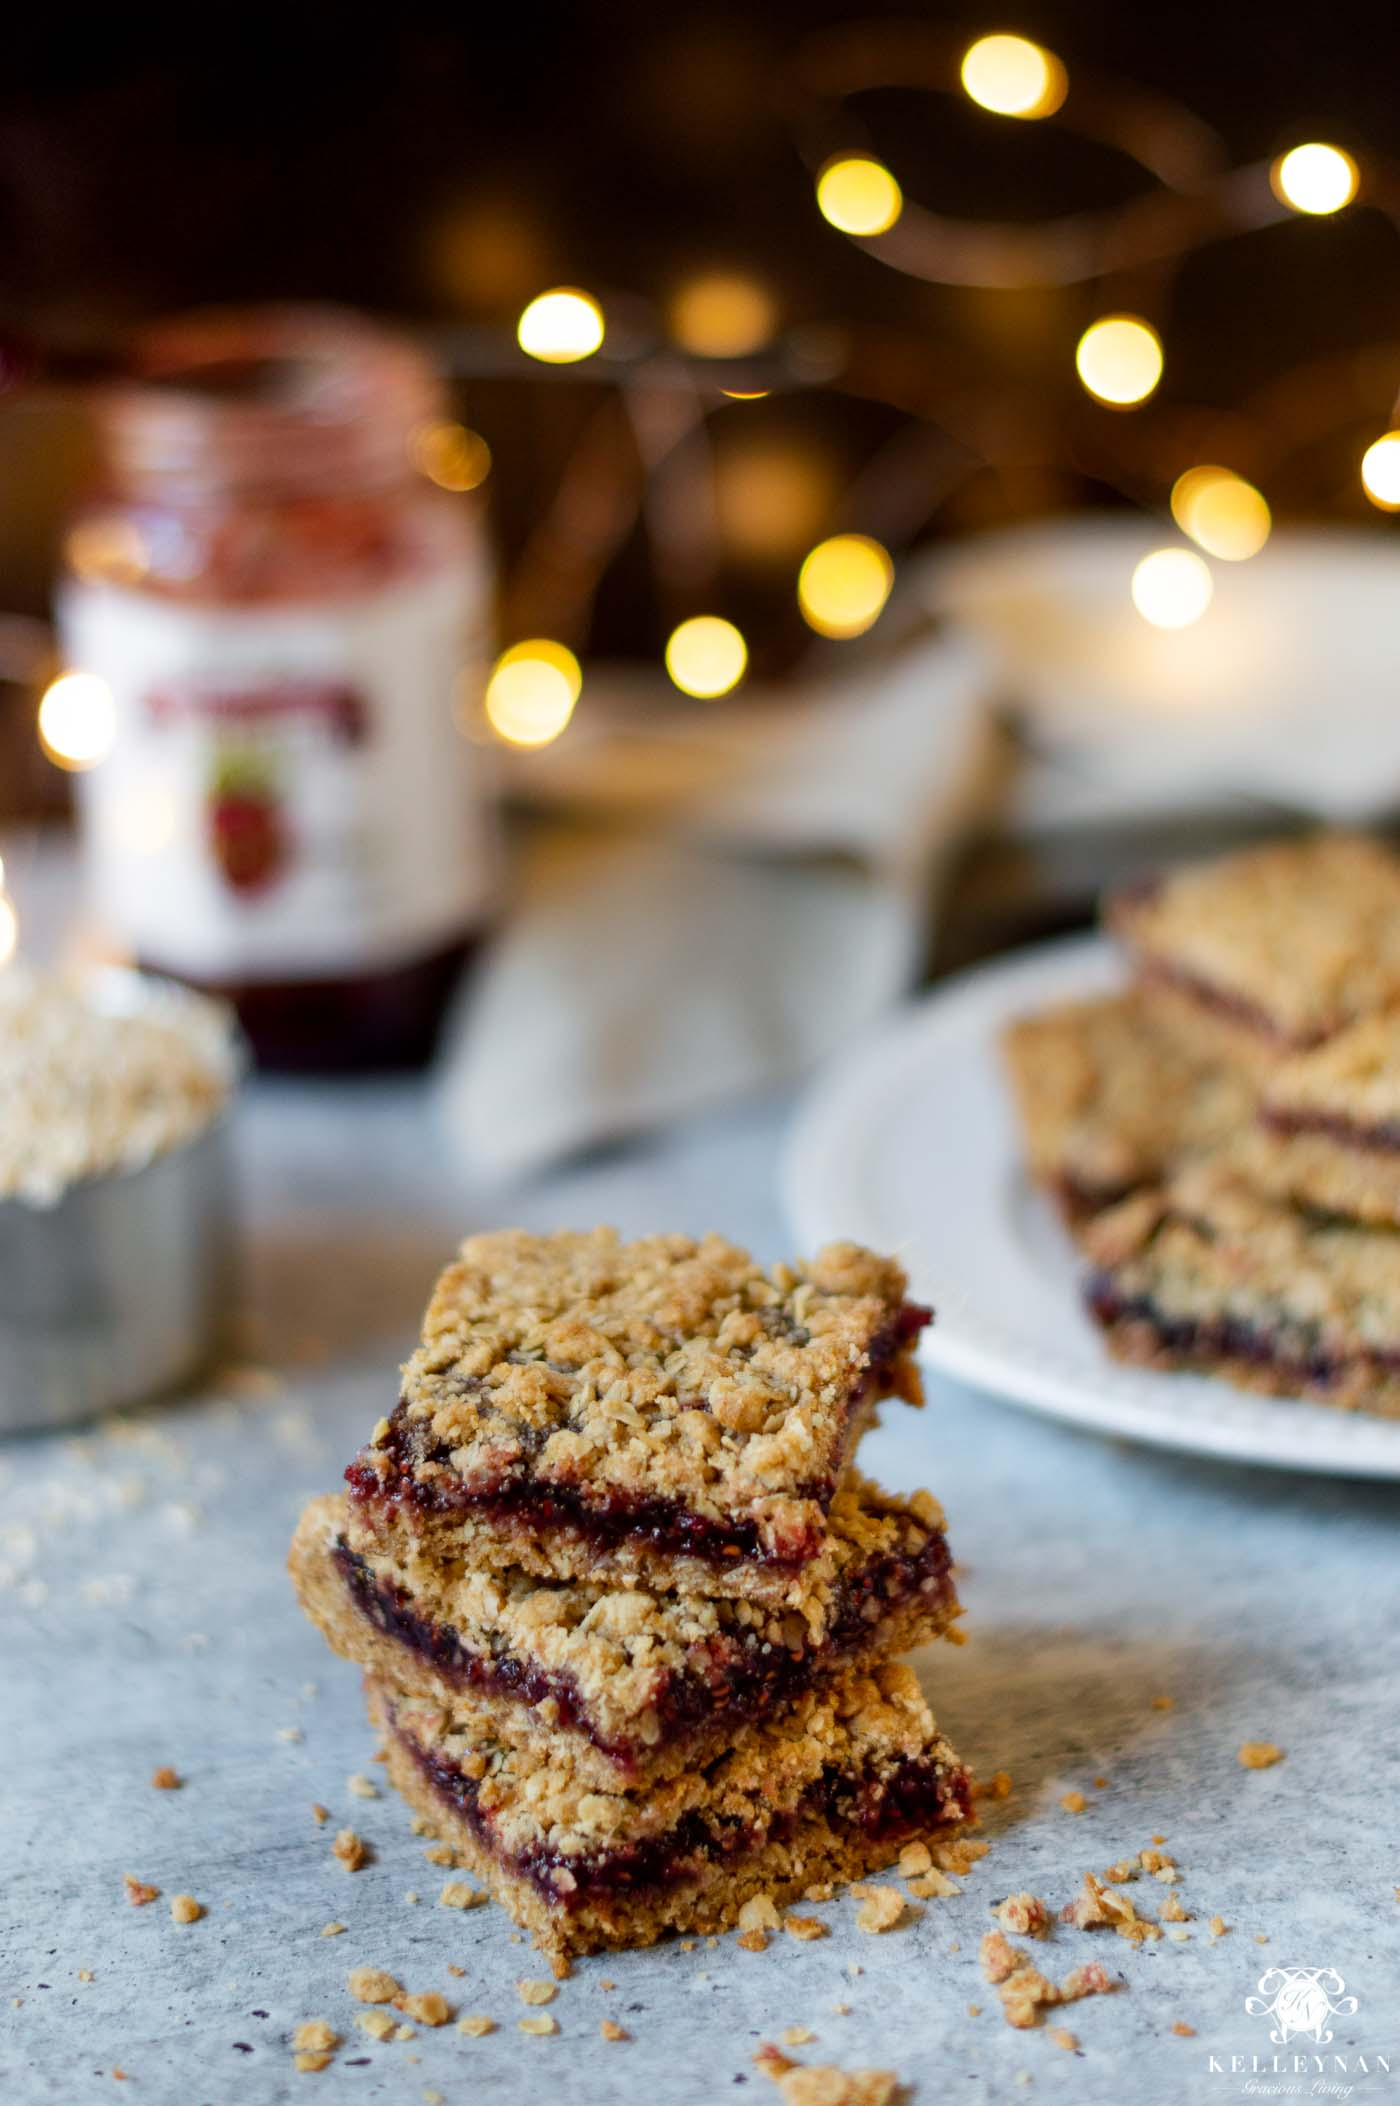 5 EASY Christmas Treats with 5 Ingredients (or less!) Raspberry Oatmeal Bars are Delish!